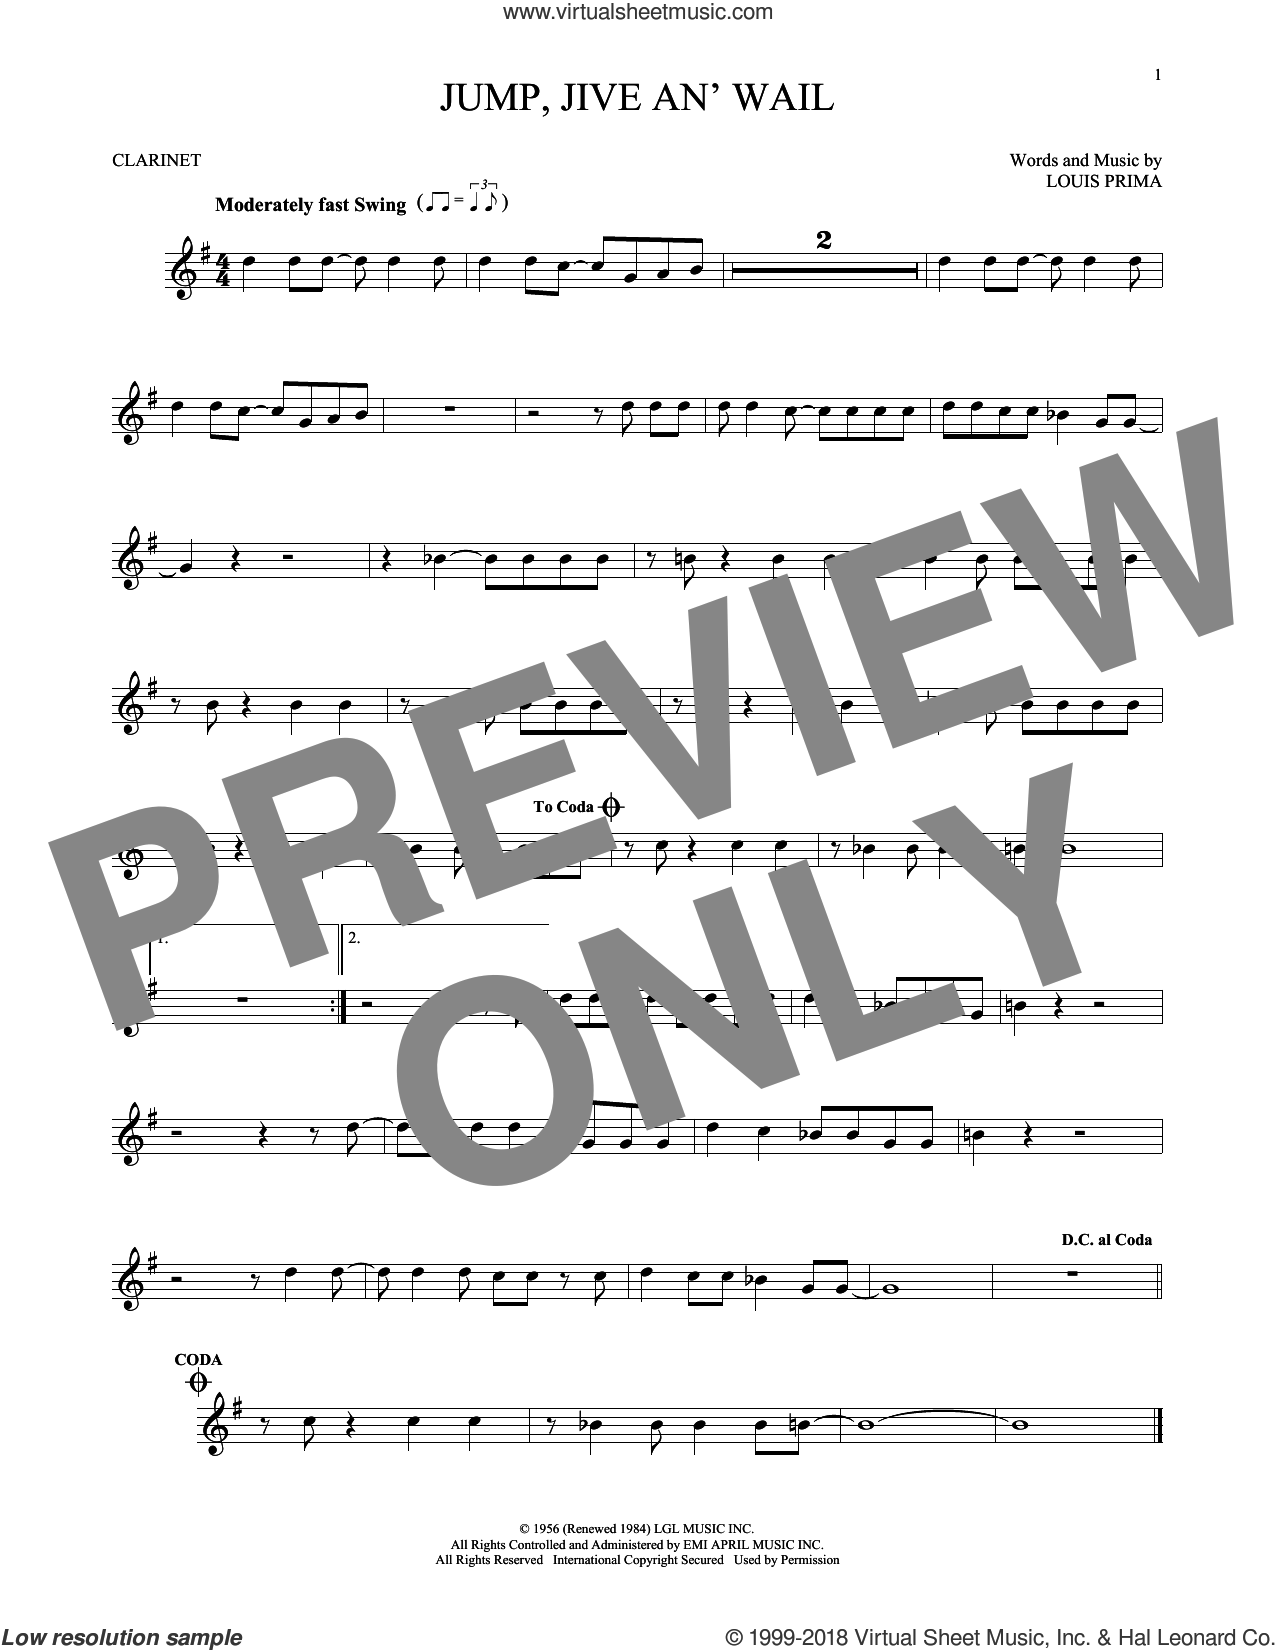 Jump, Jive An' Wail sheet music for clarinet solo by Louis Prima and Brian Setzer, intermediate skill level